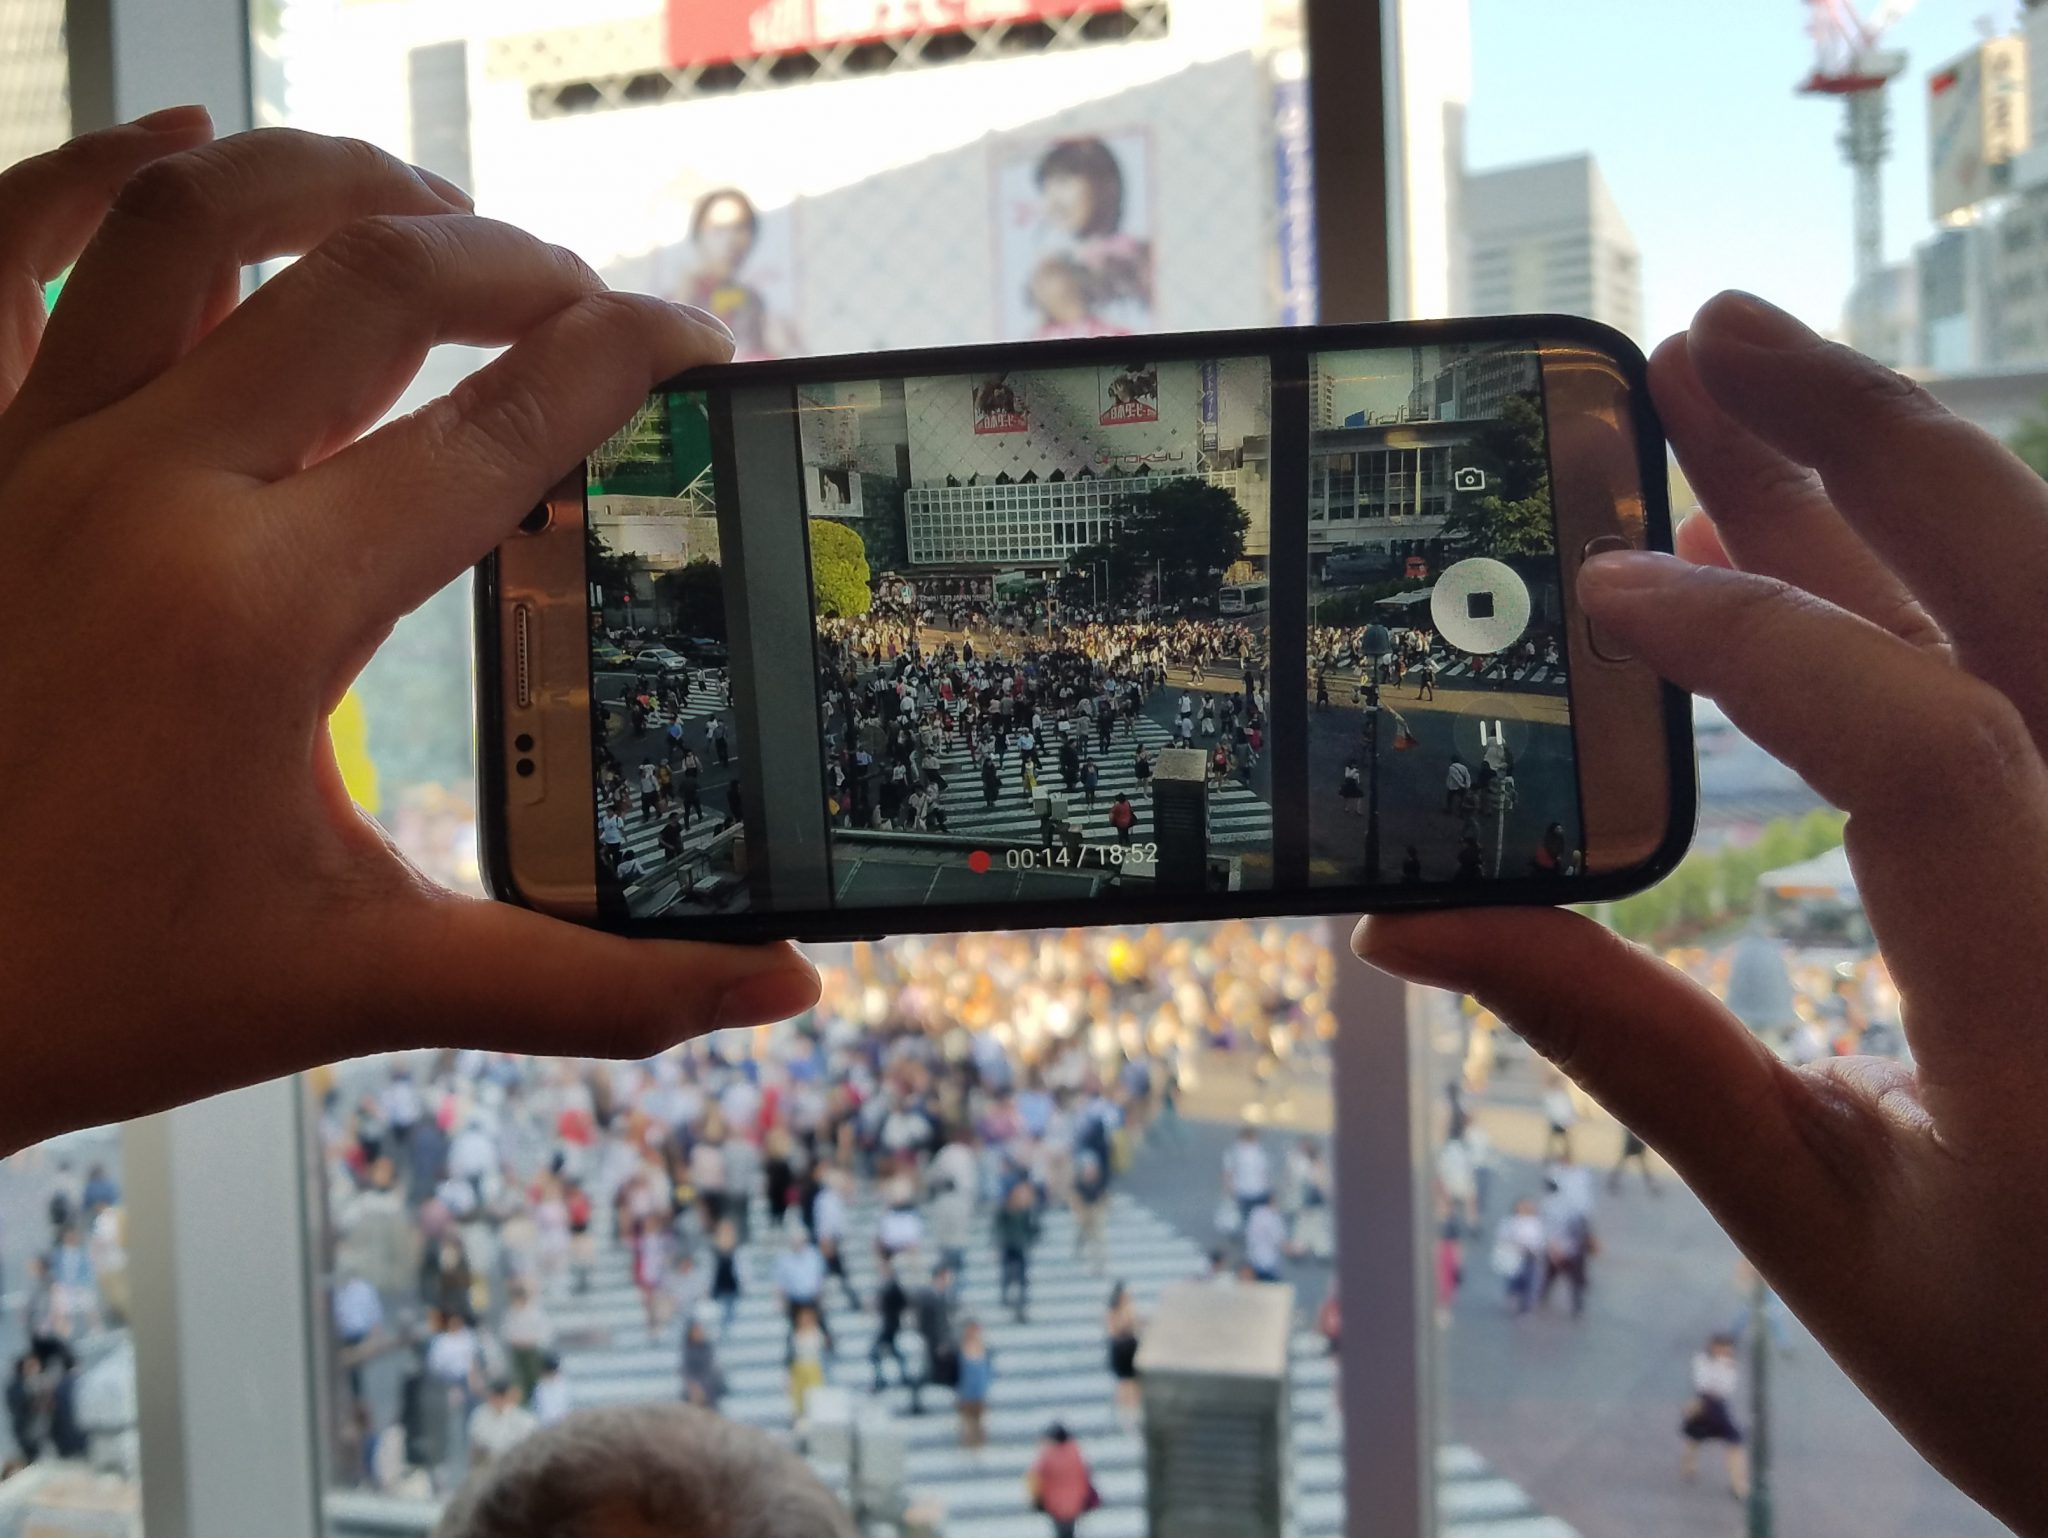 Shibuya Crossing picture-in-picture seen on a Maction Planet Tokyo Private Tour